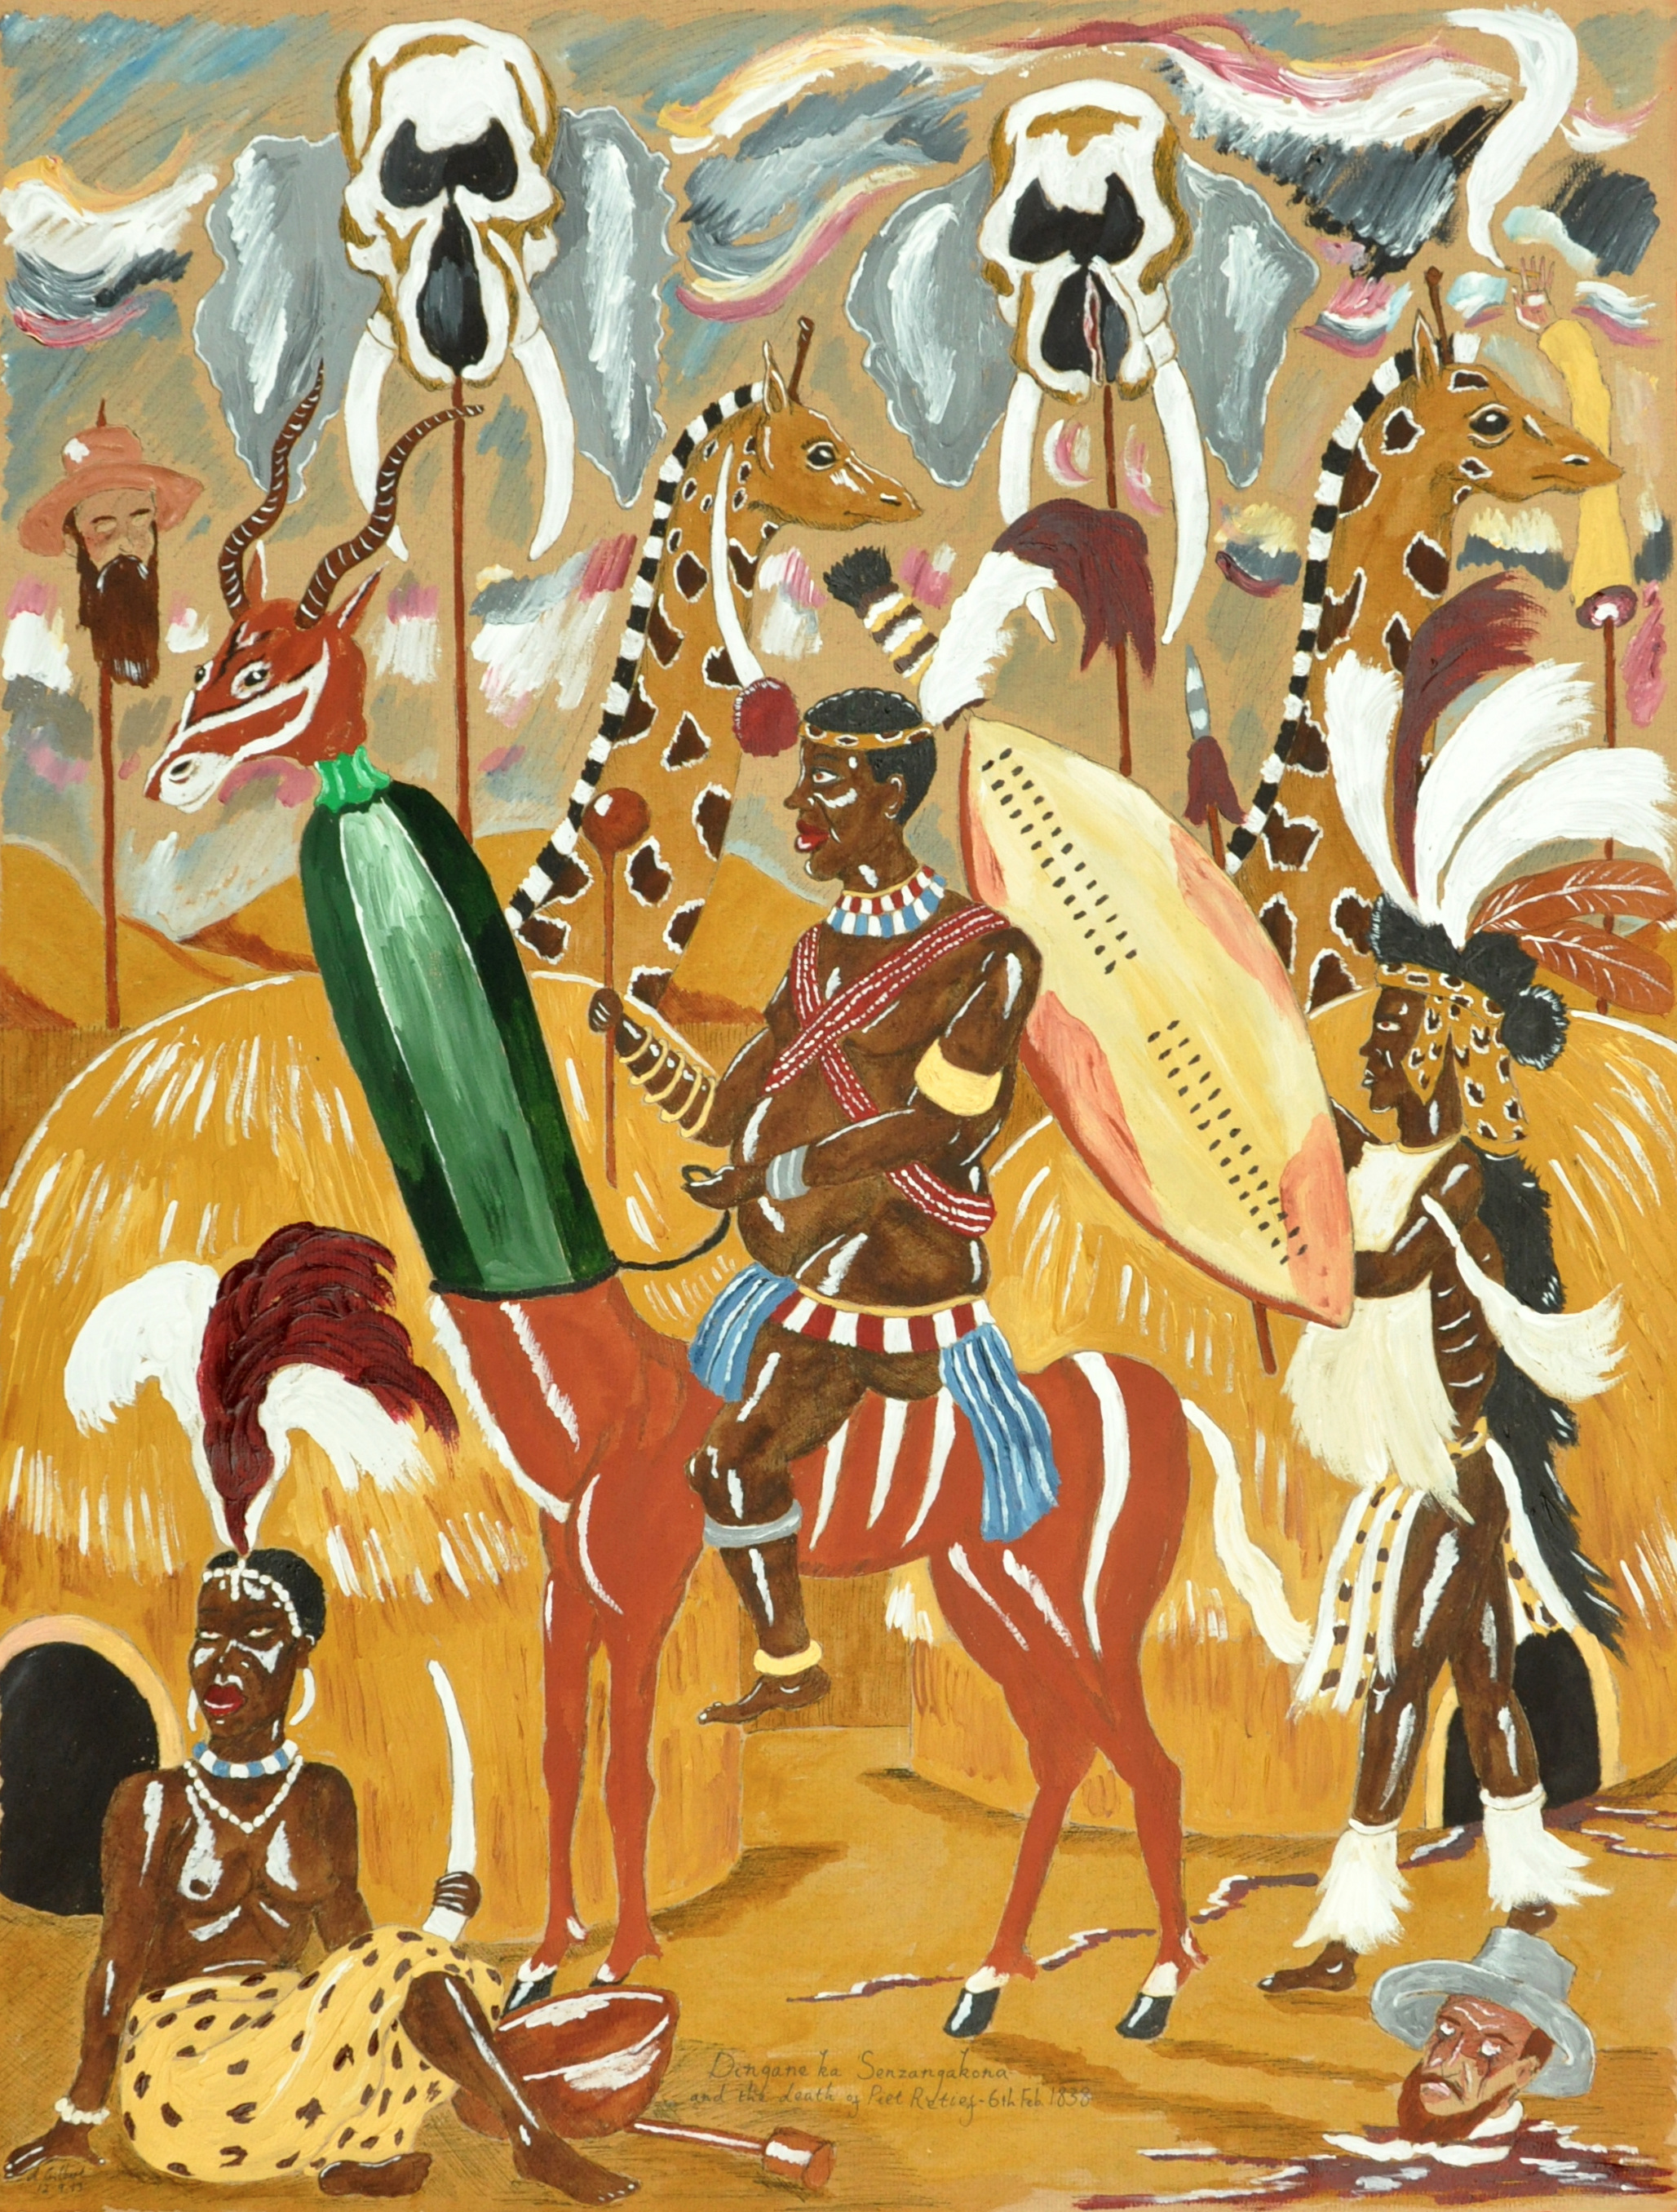 Andrew Gilbert, King Dingane kaSenzagakhona Zulu with head of Piet Retief, 1838, 2013, acrylic, water colour and fineliner on paper, 62 x 48 cm